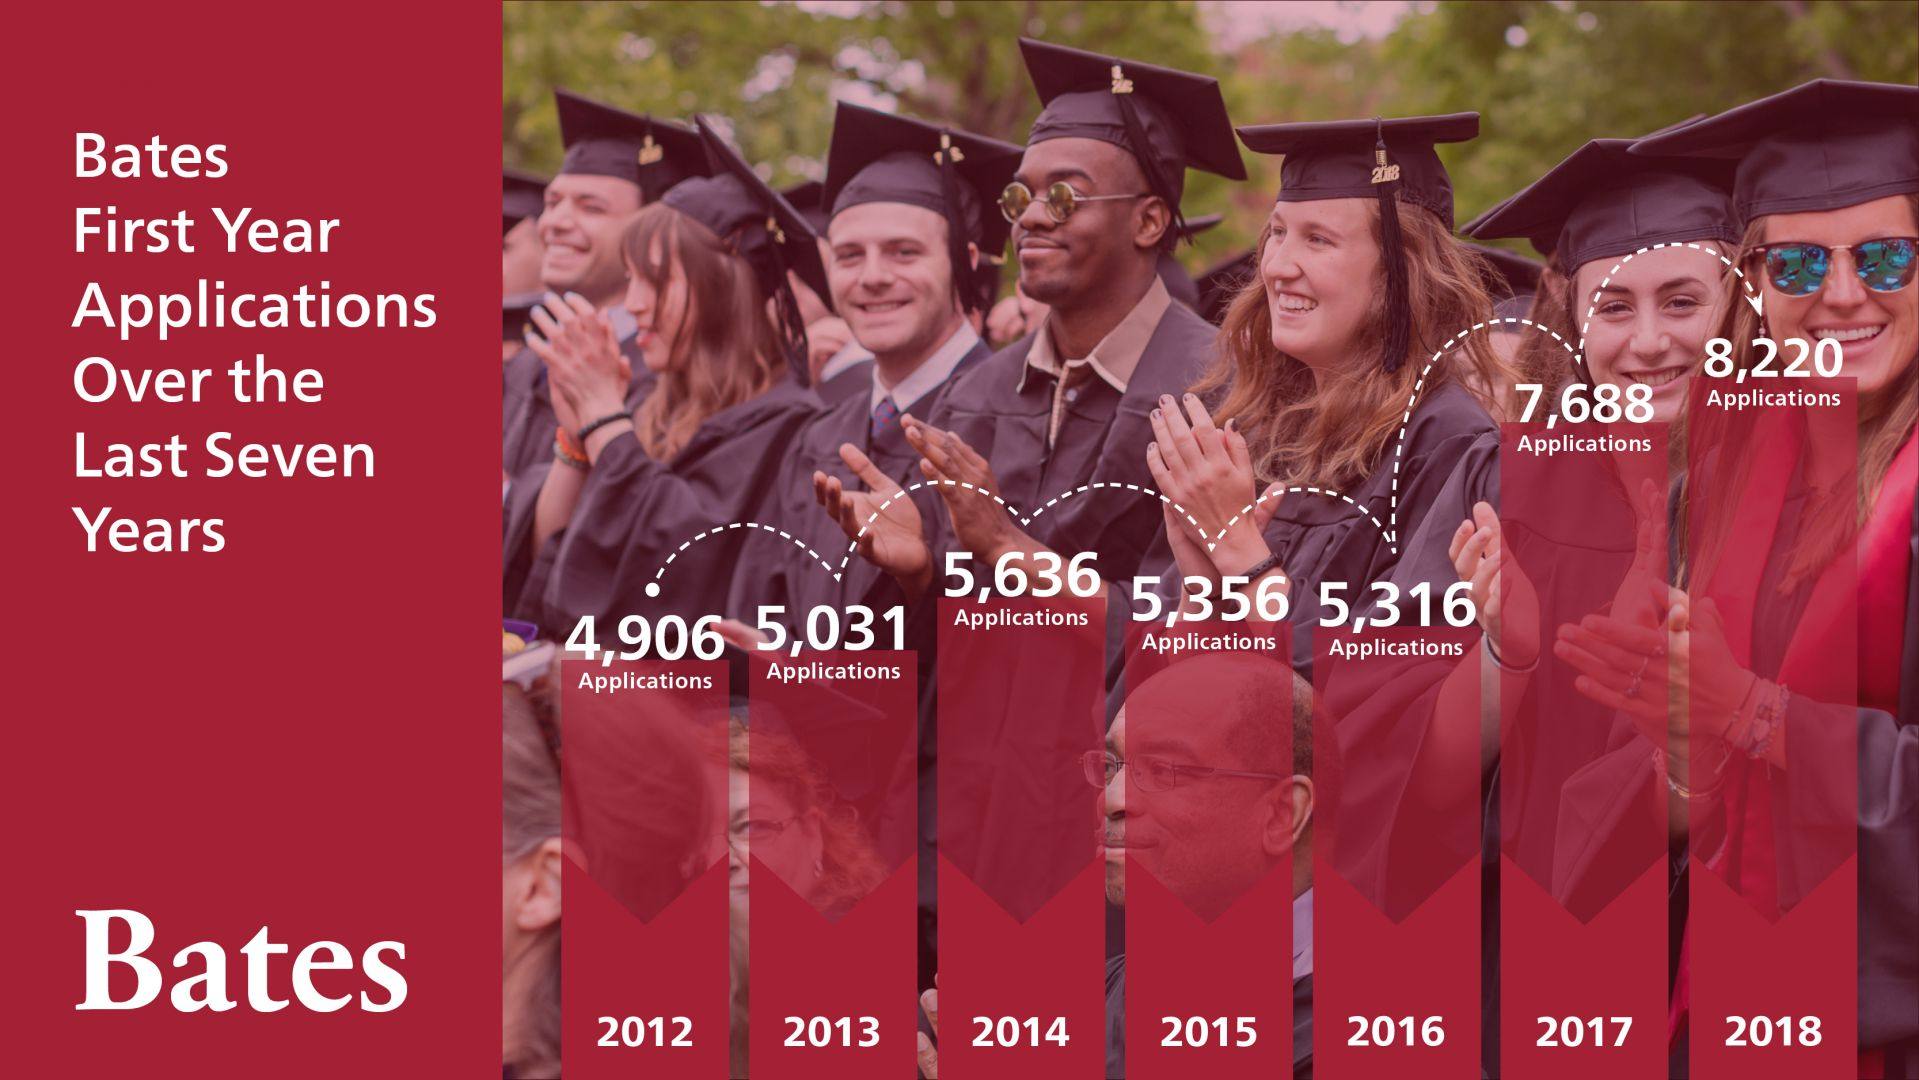 Applications to Bates College set record for second consecutive year